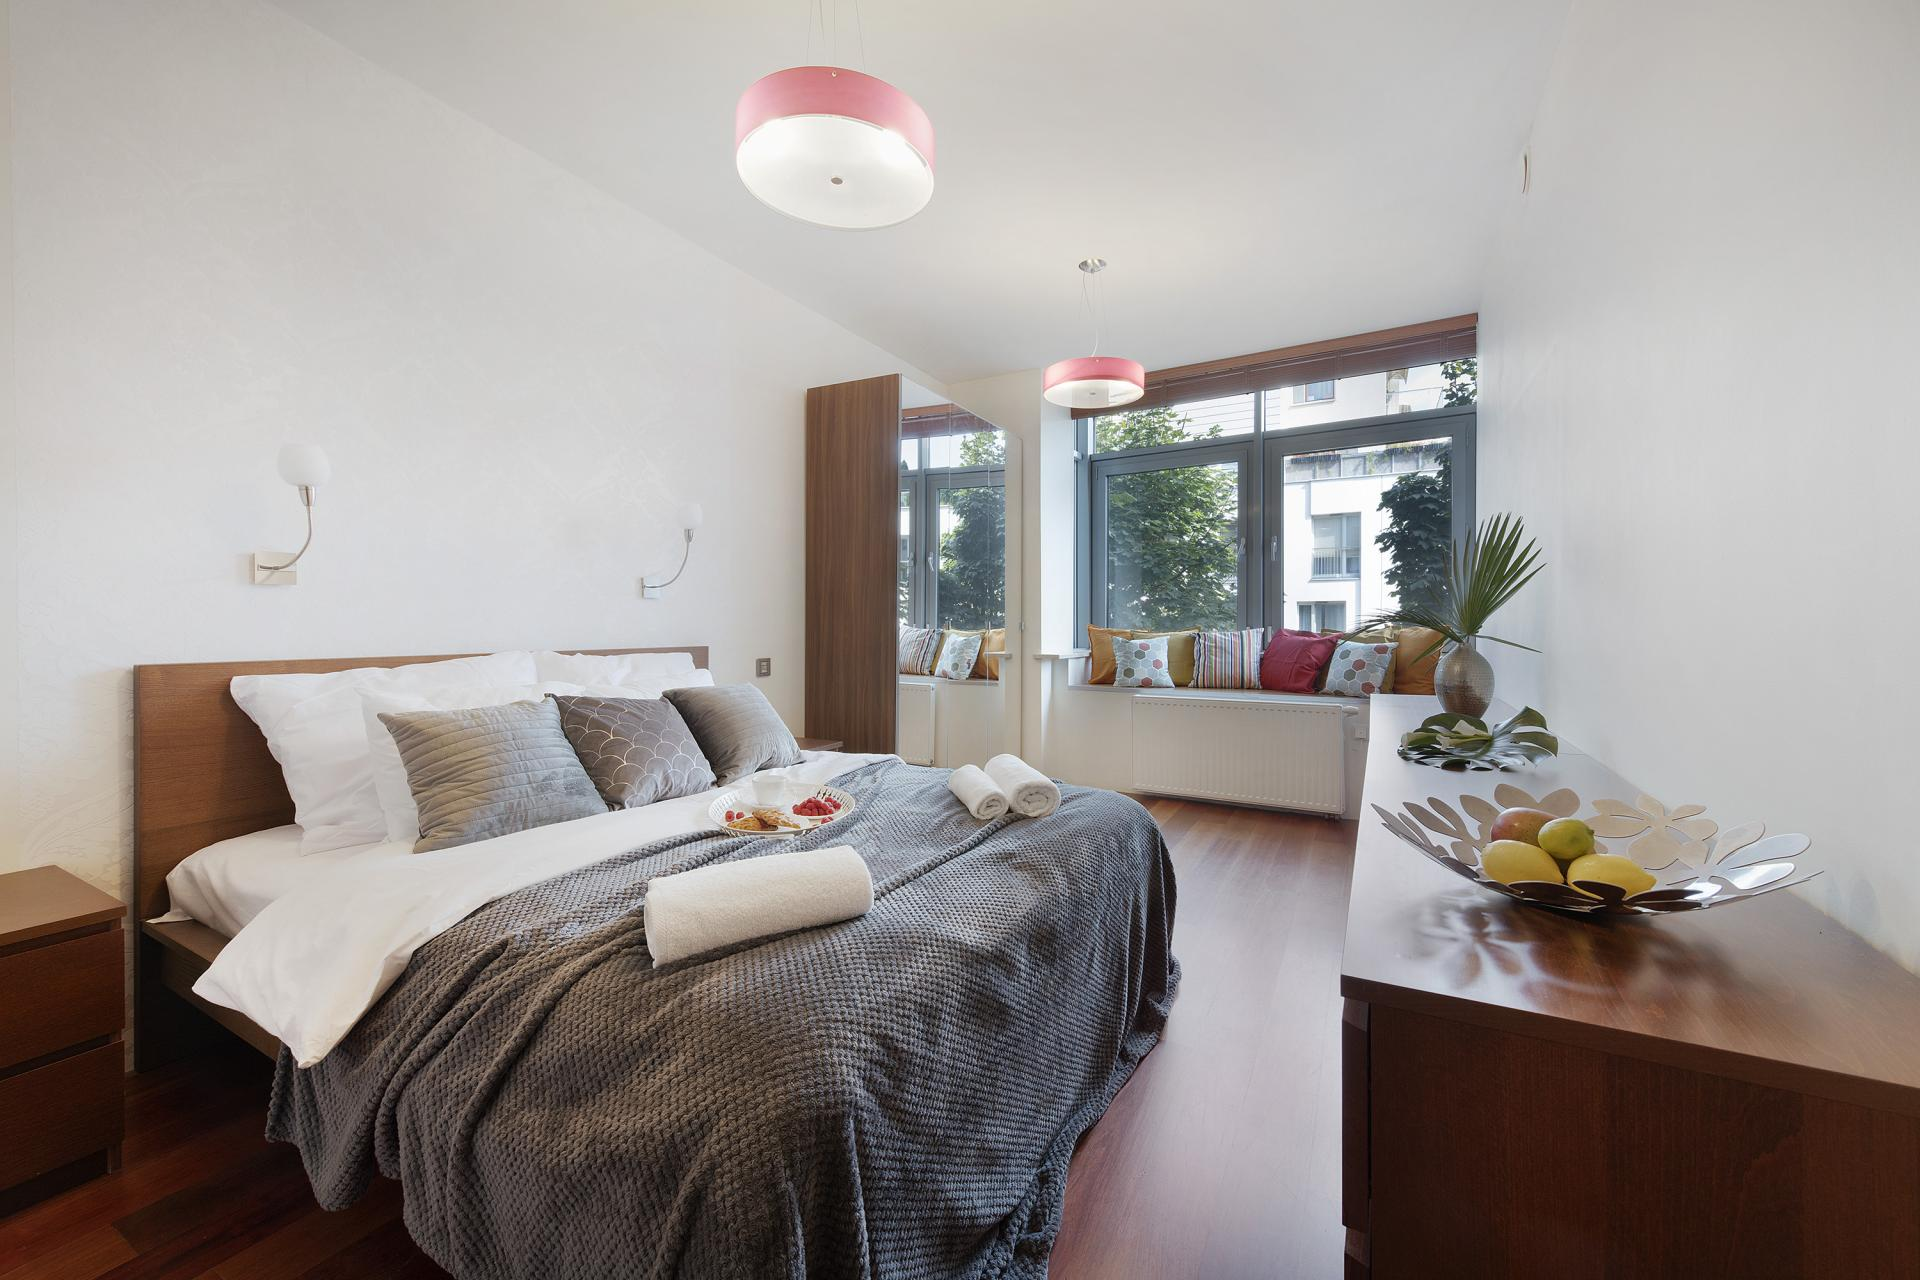 Double bed at Wilanow 6 Apartments, Wilanów, Warsaw - Citybase Apartments